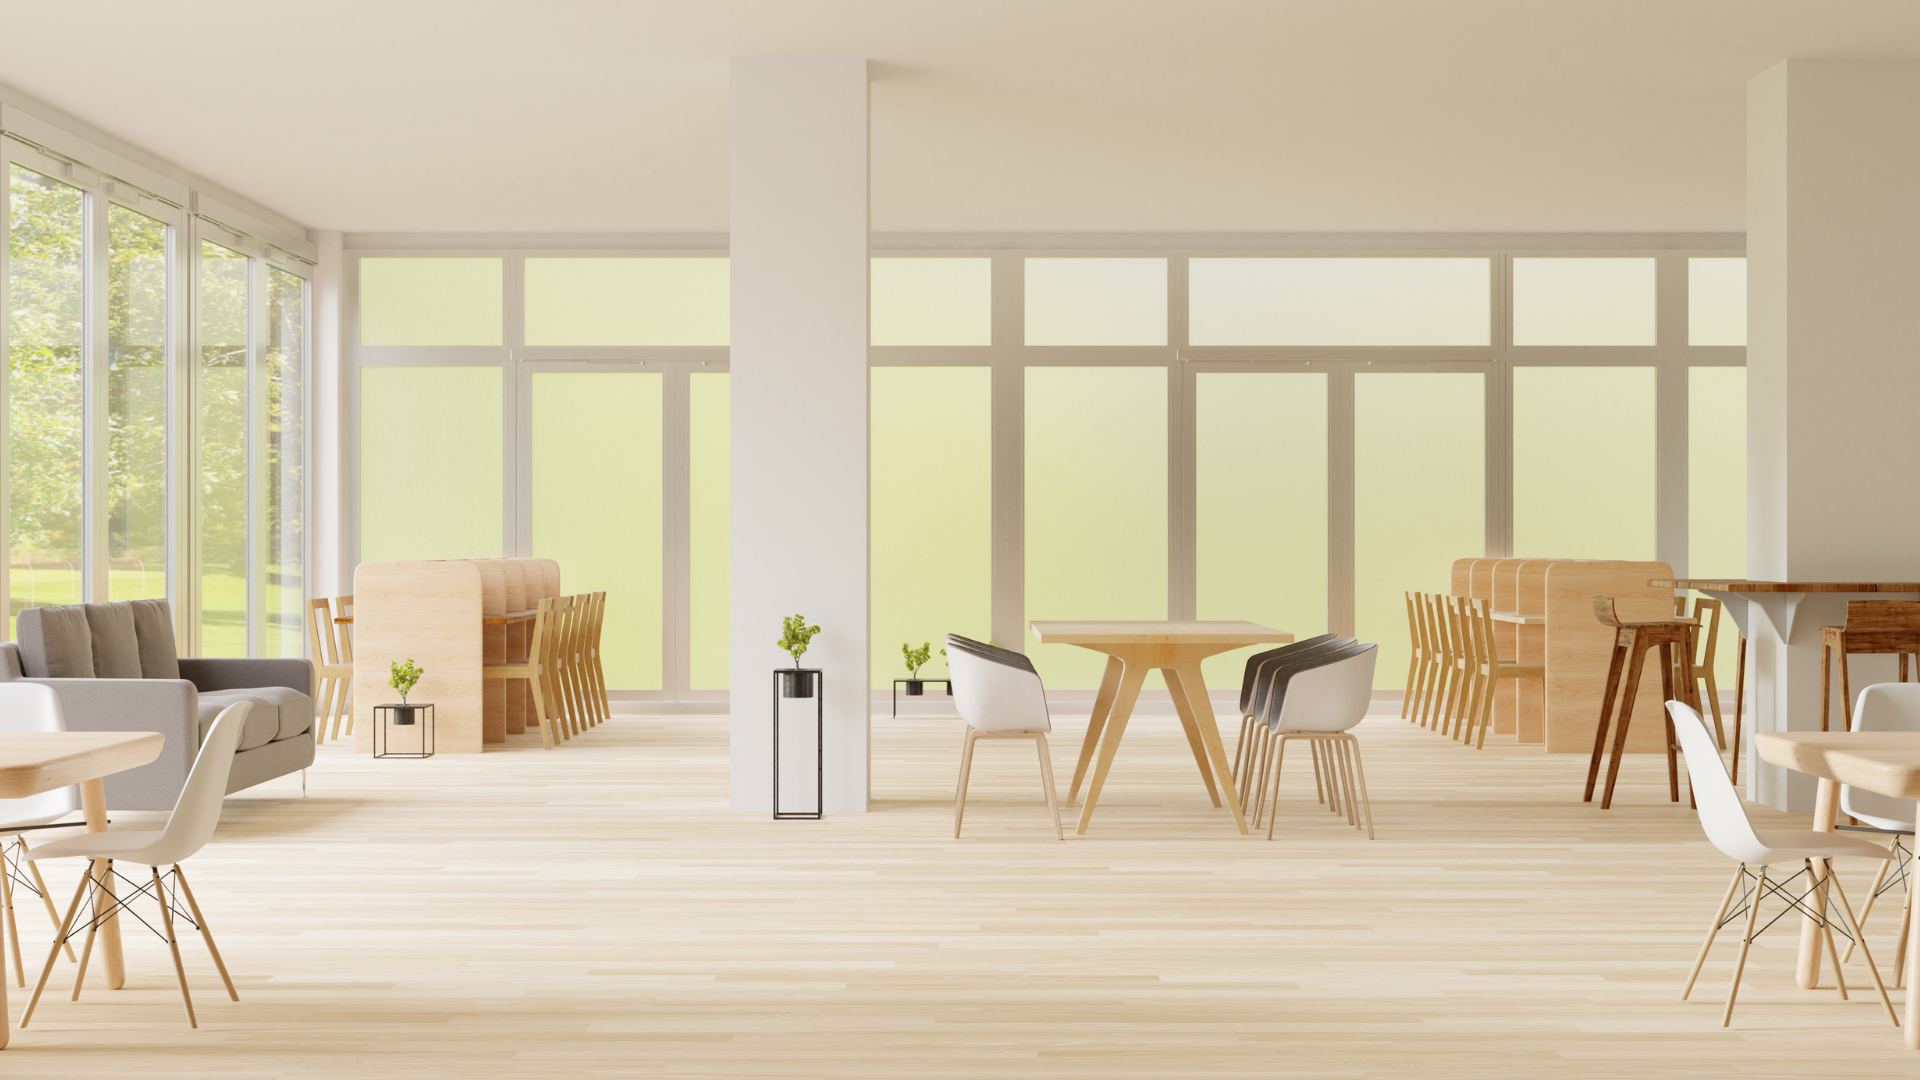 The New Office Space – What will be important?